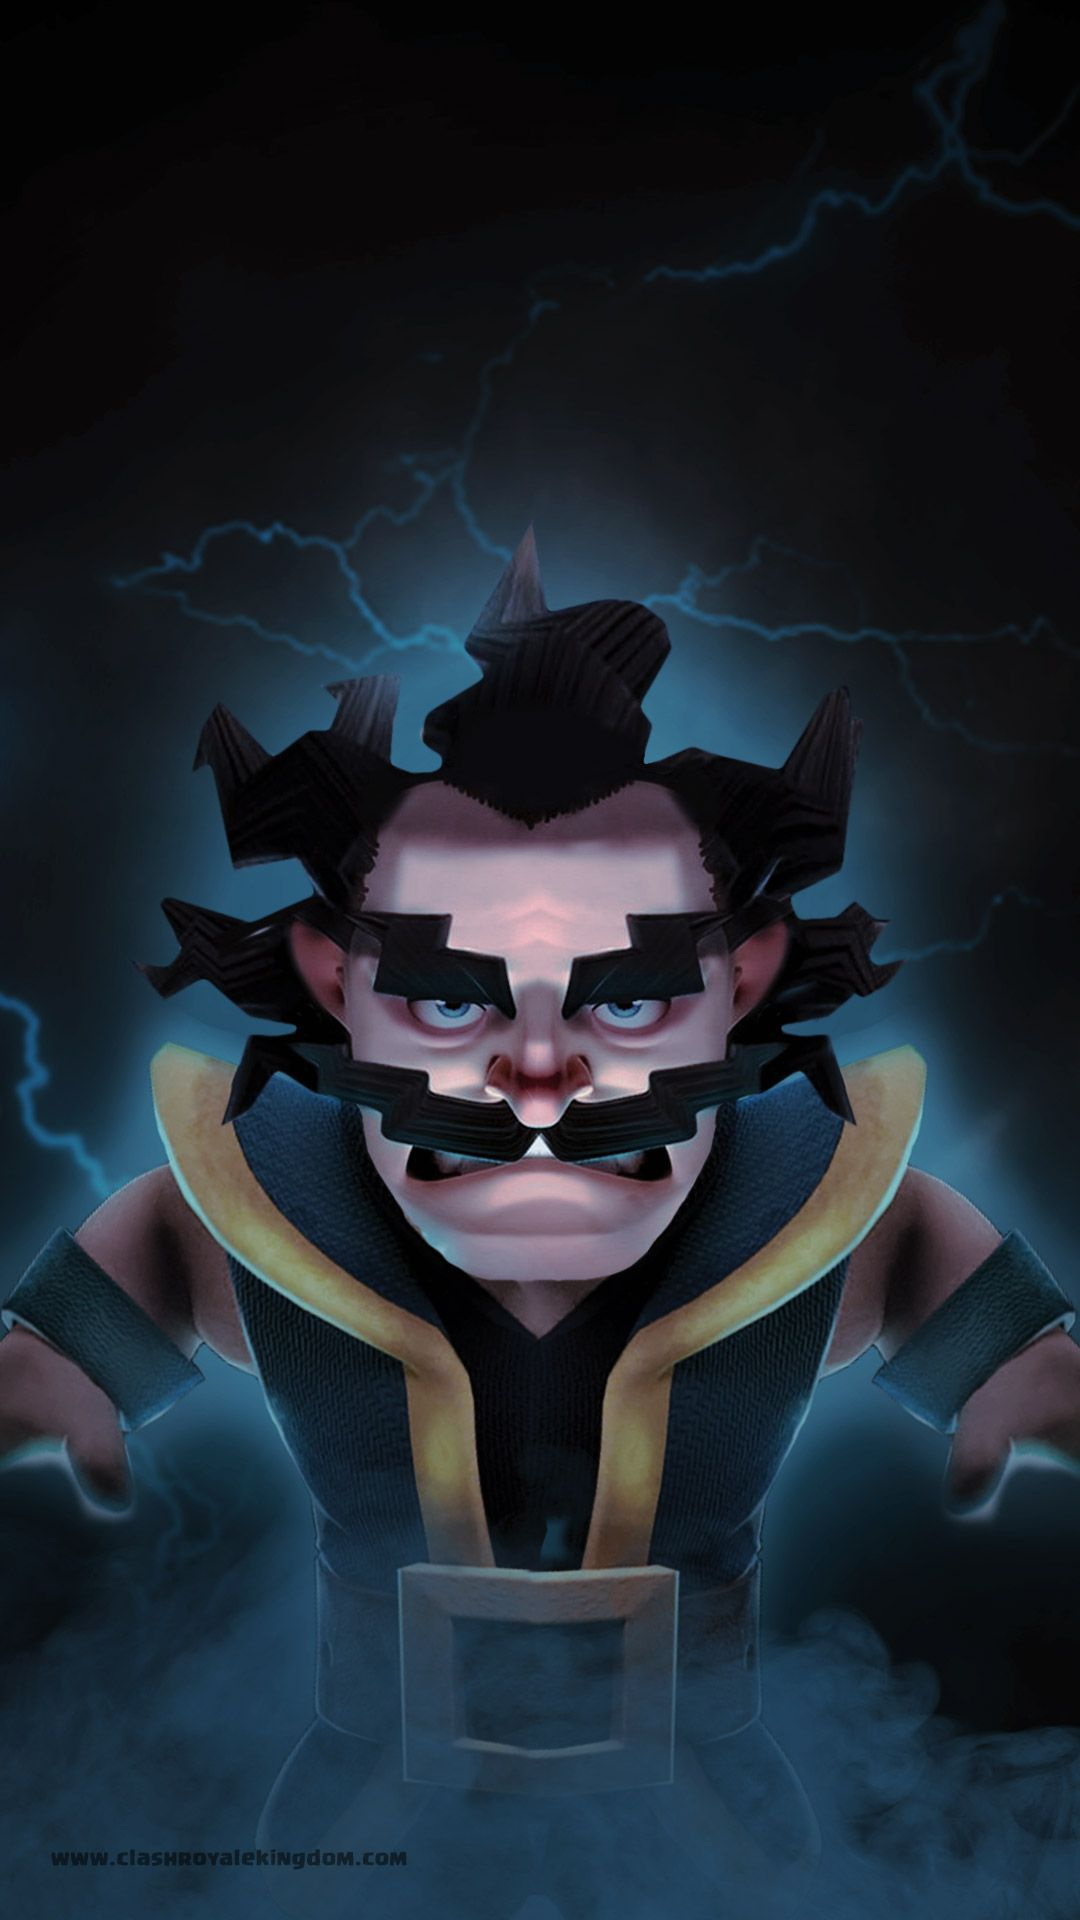 Electro Fury Wallpaper Download High Quality Clash Royale